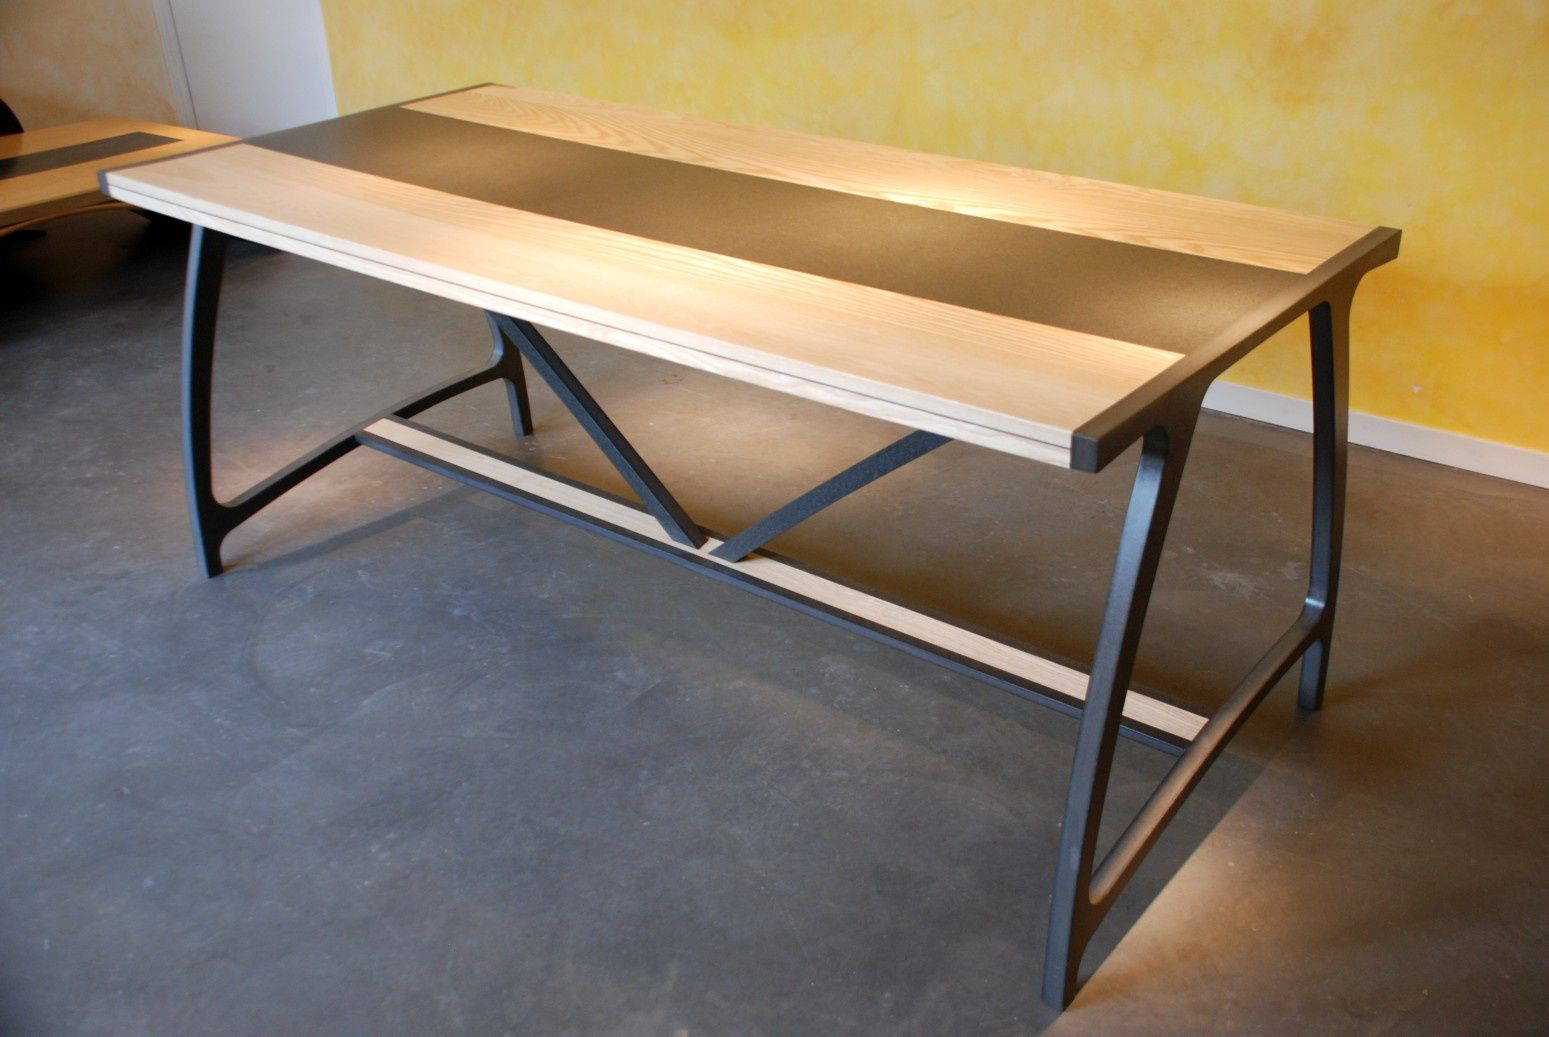 Table manger design bulle atelier pourquoi pas for Table a manger style atelier